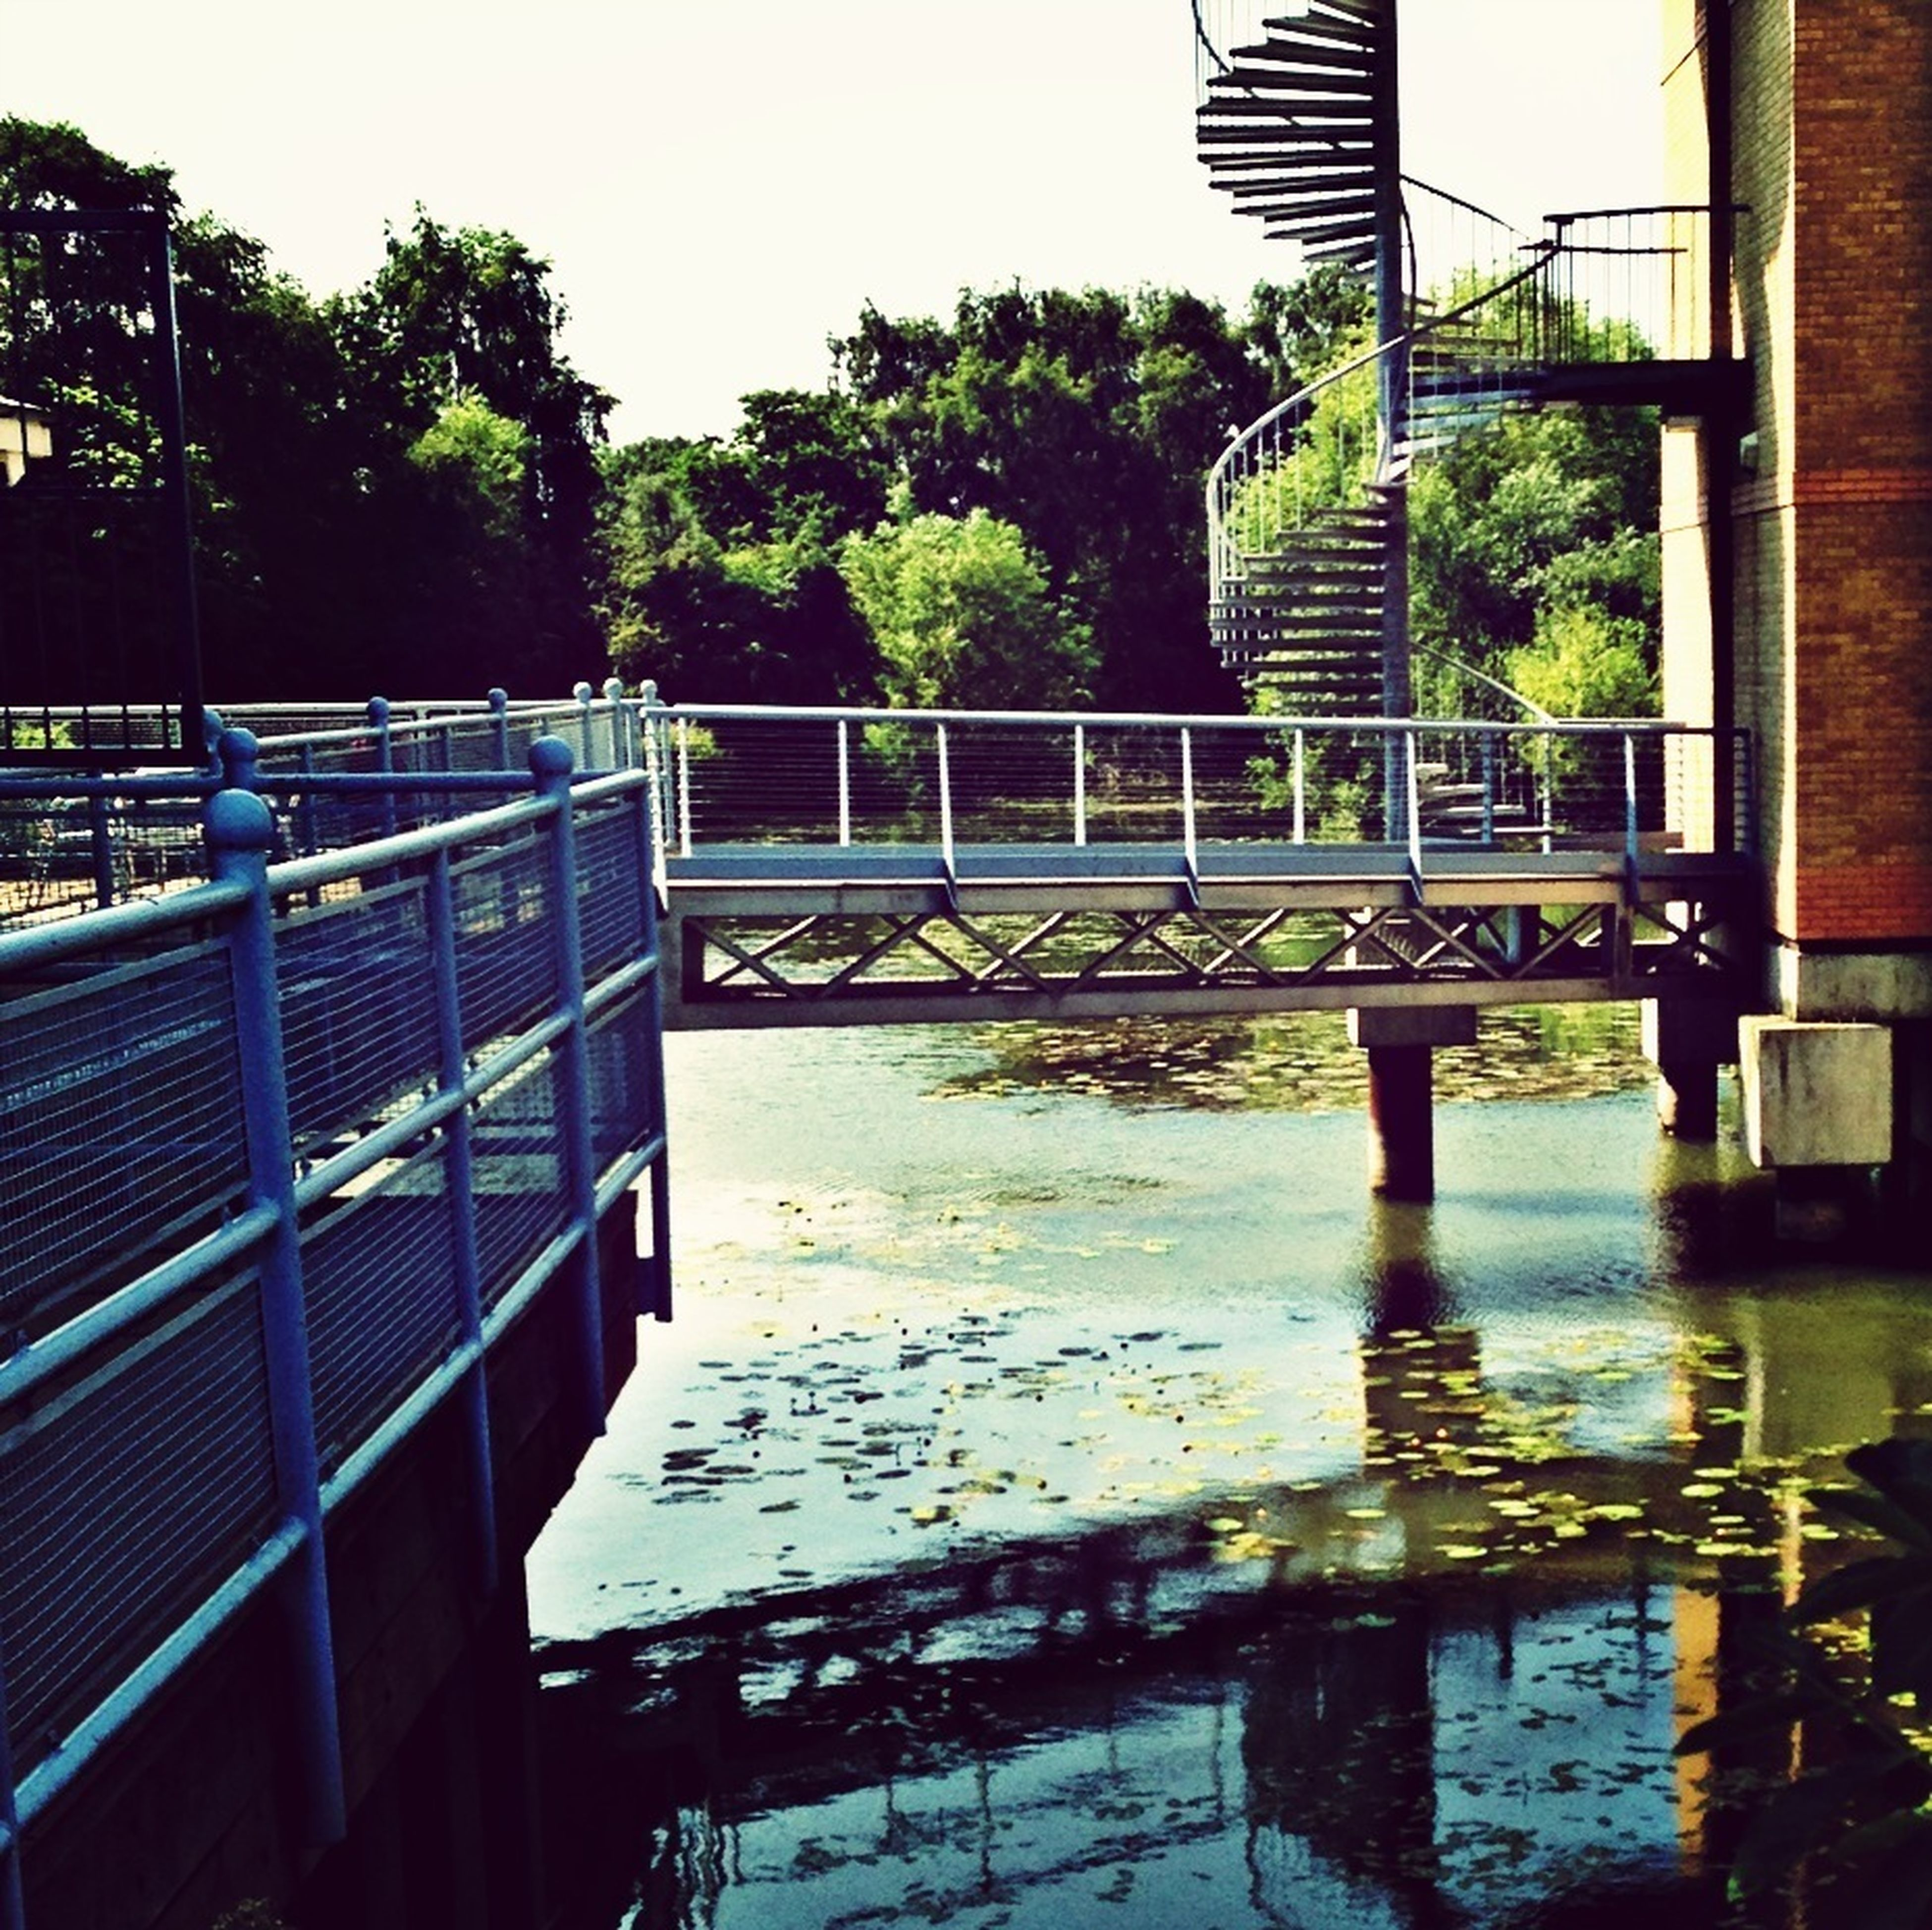 built structure, water, architecture, tree, reflection, railing, connection, building exterior, river, bridge - man made structure, footbridge, day, lake, outdoors, no people, plant, growth, waterfront, bridge, metal